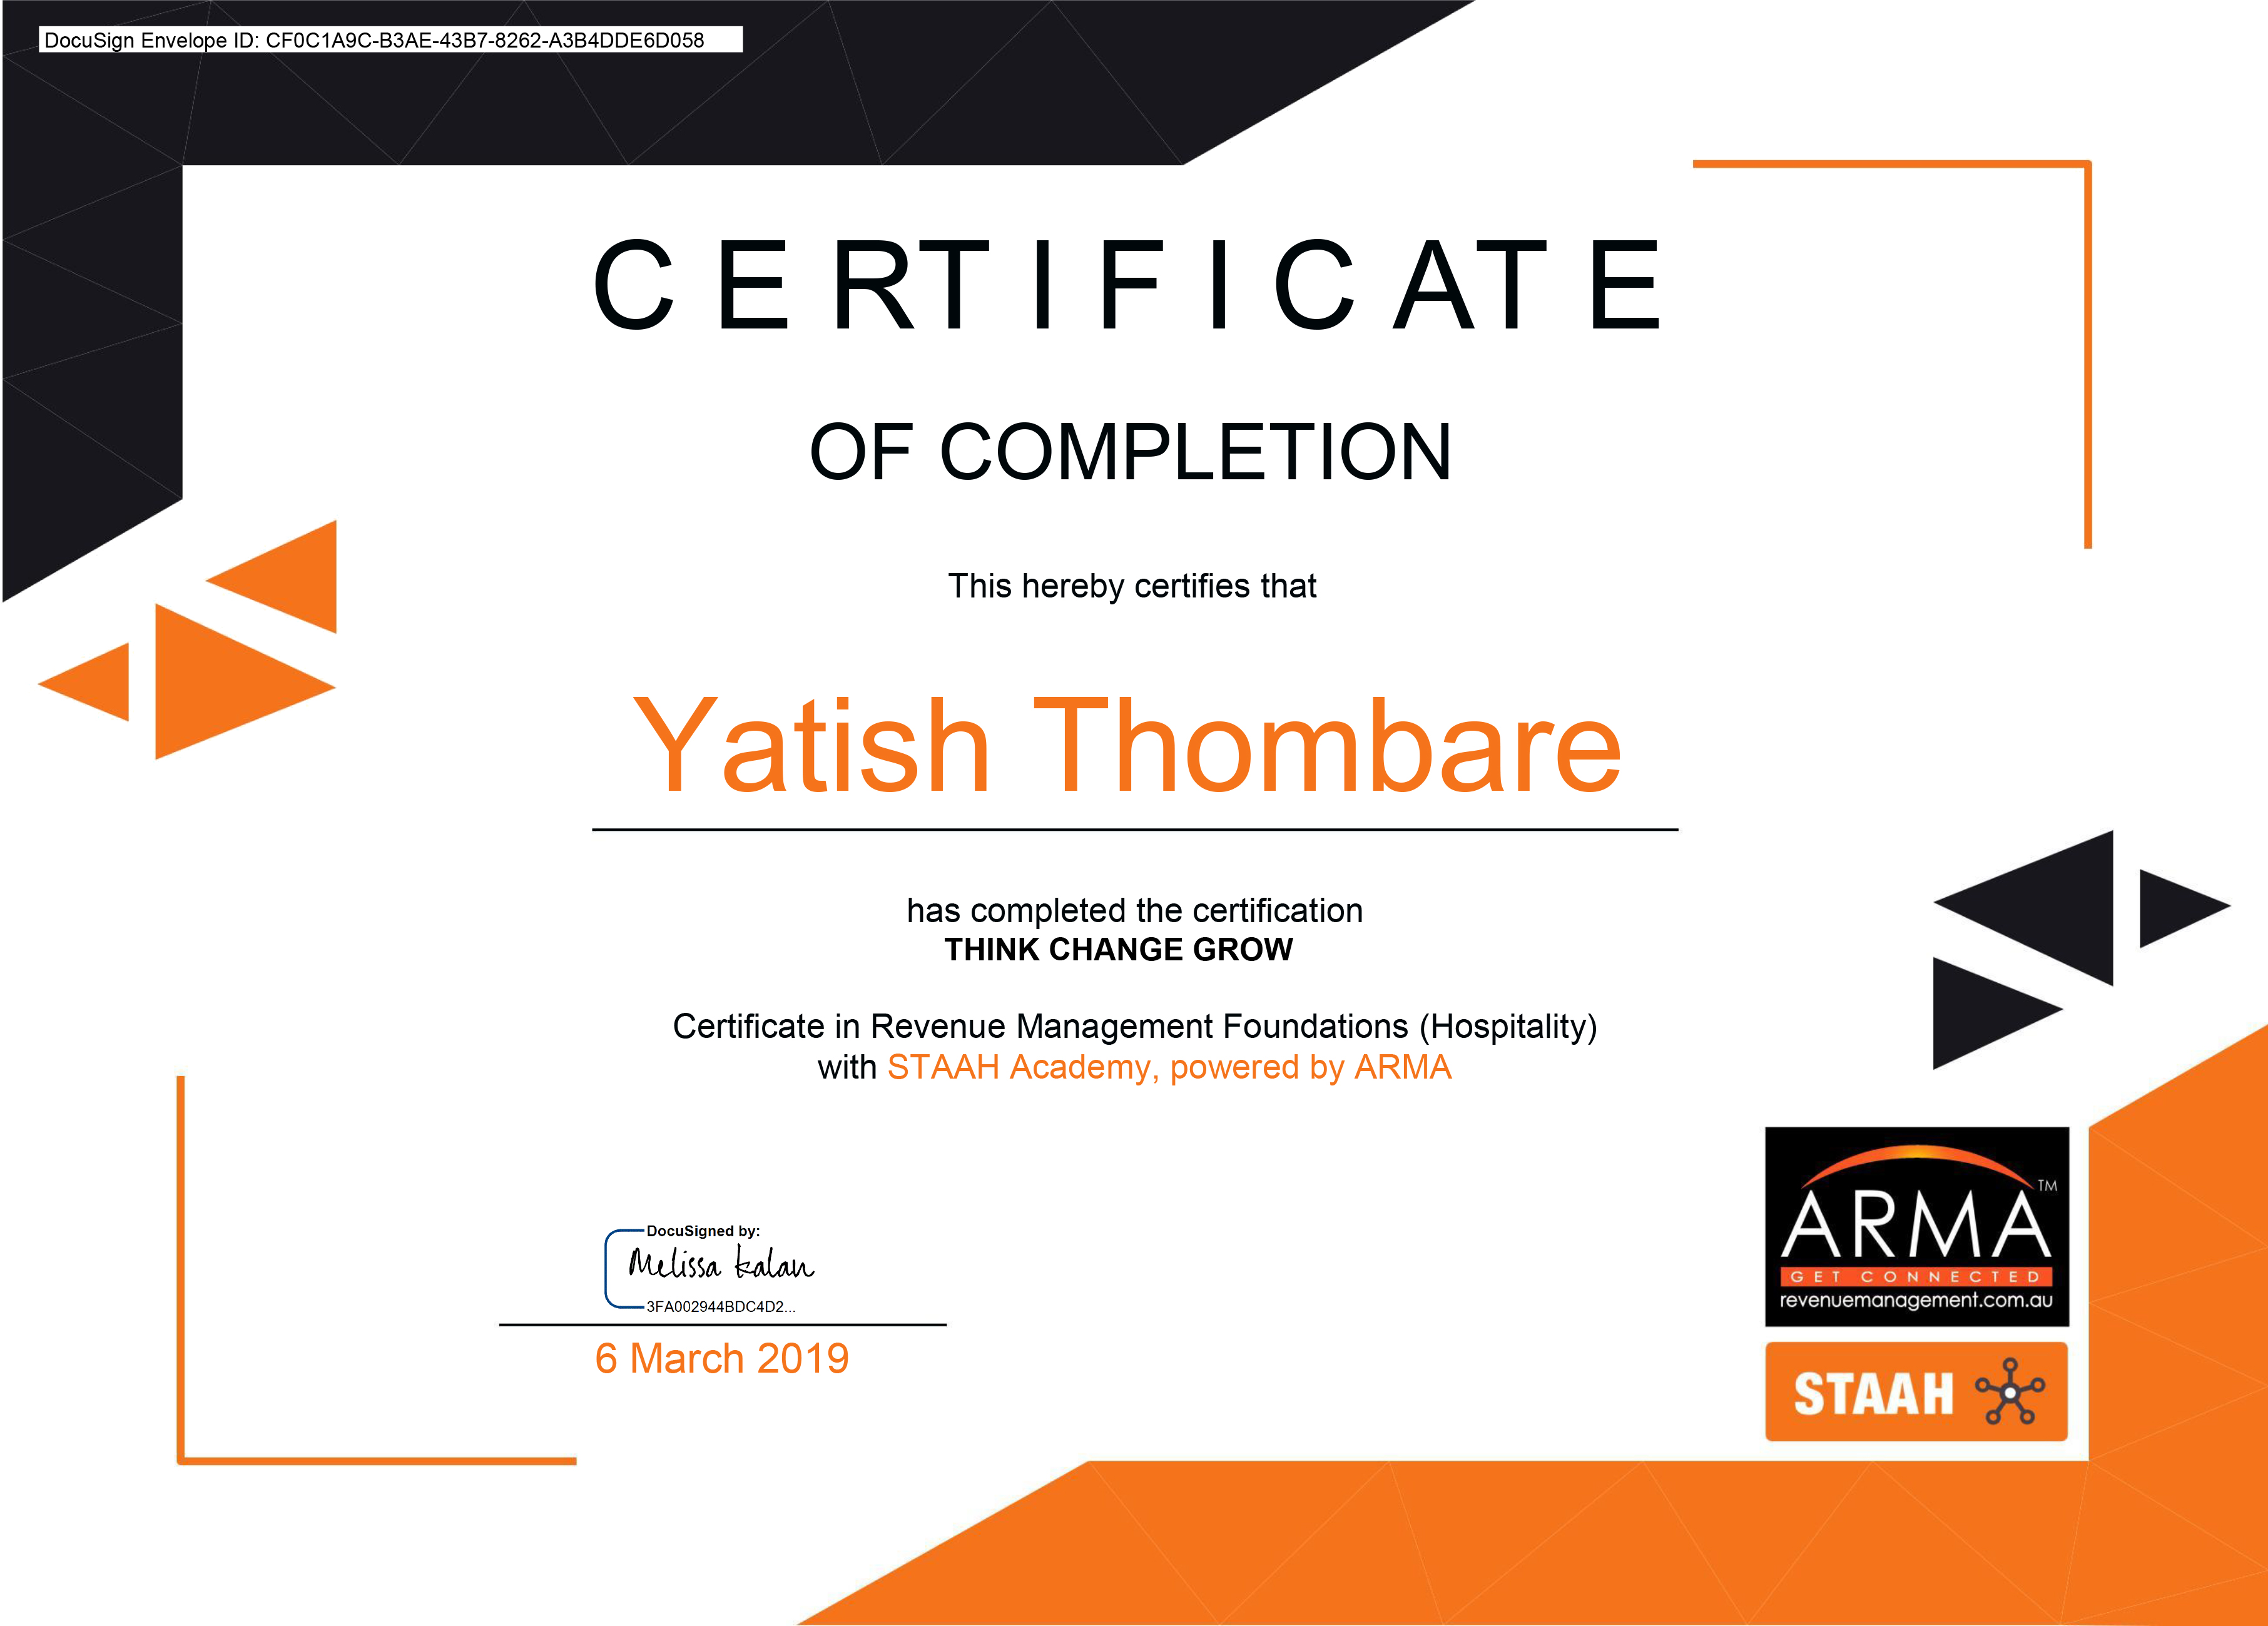 ARMA - Certificate Of Completion